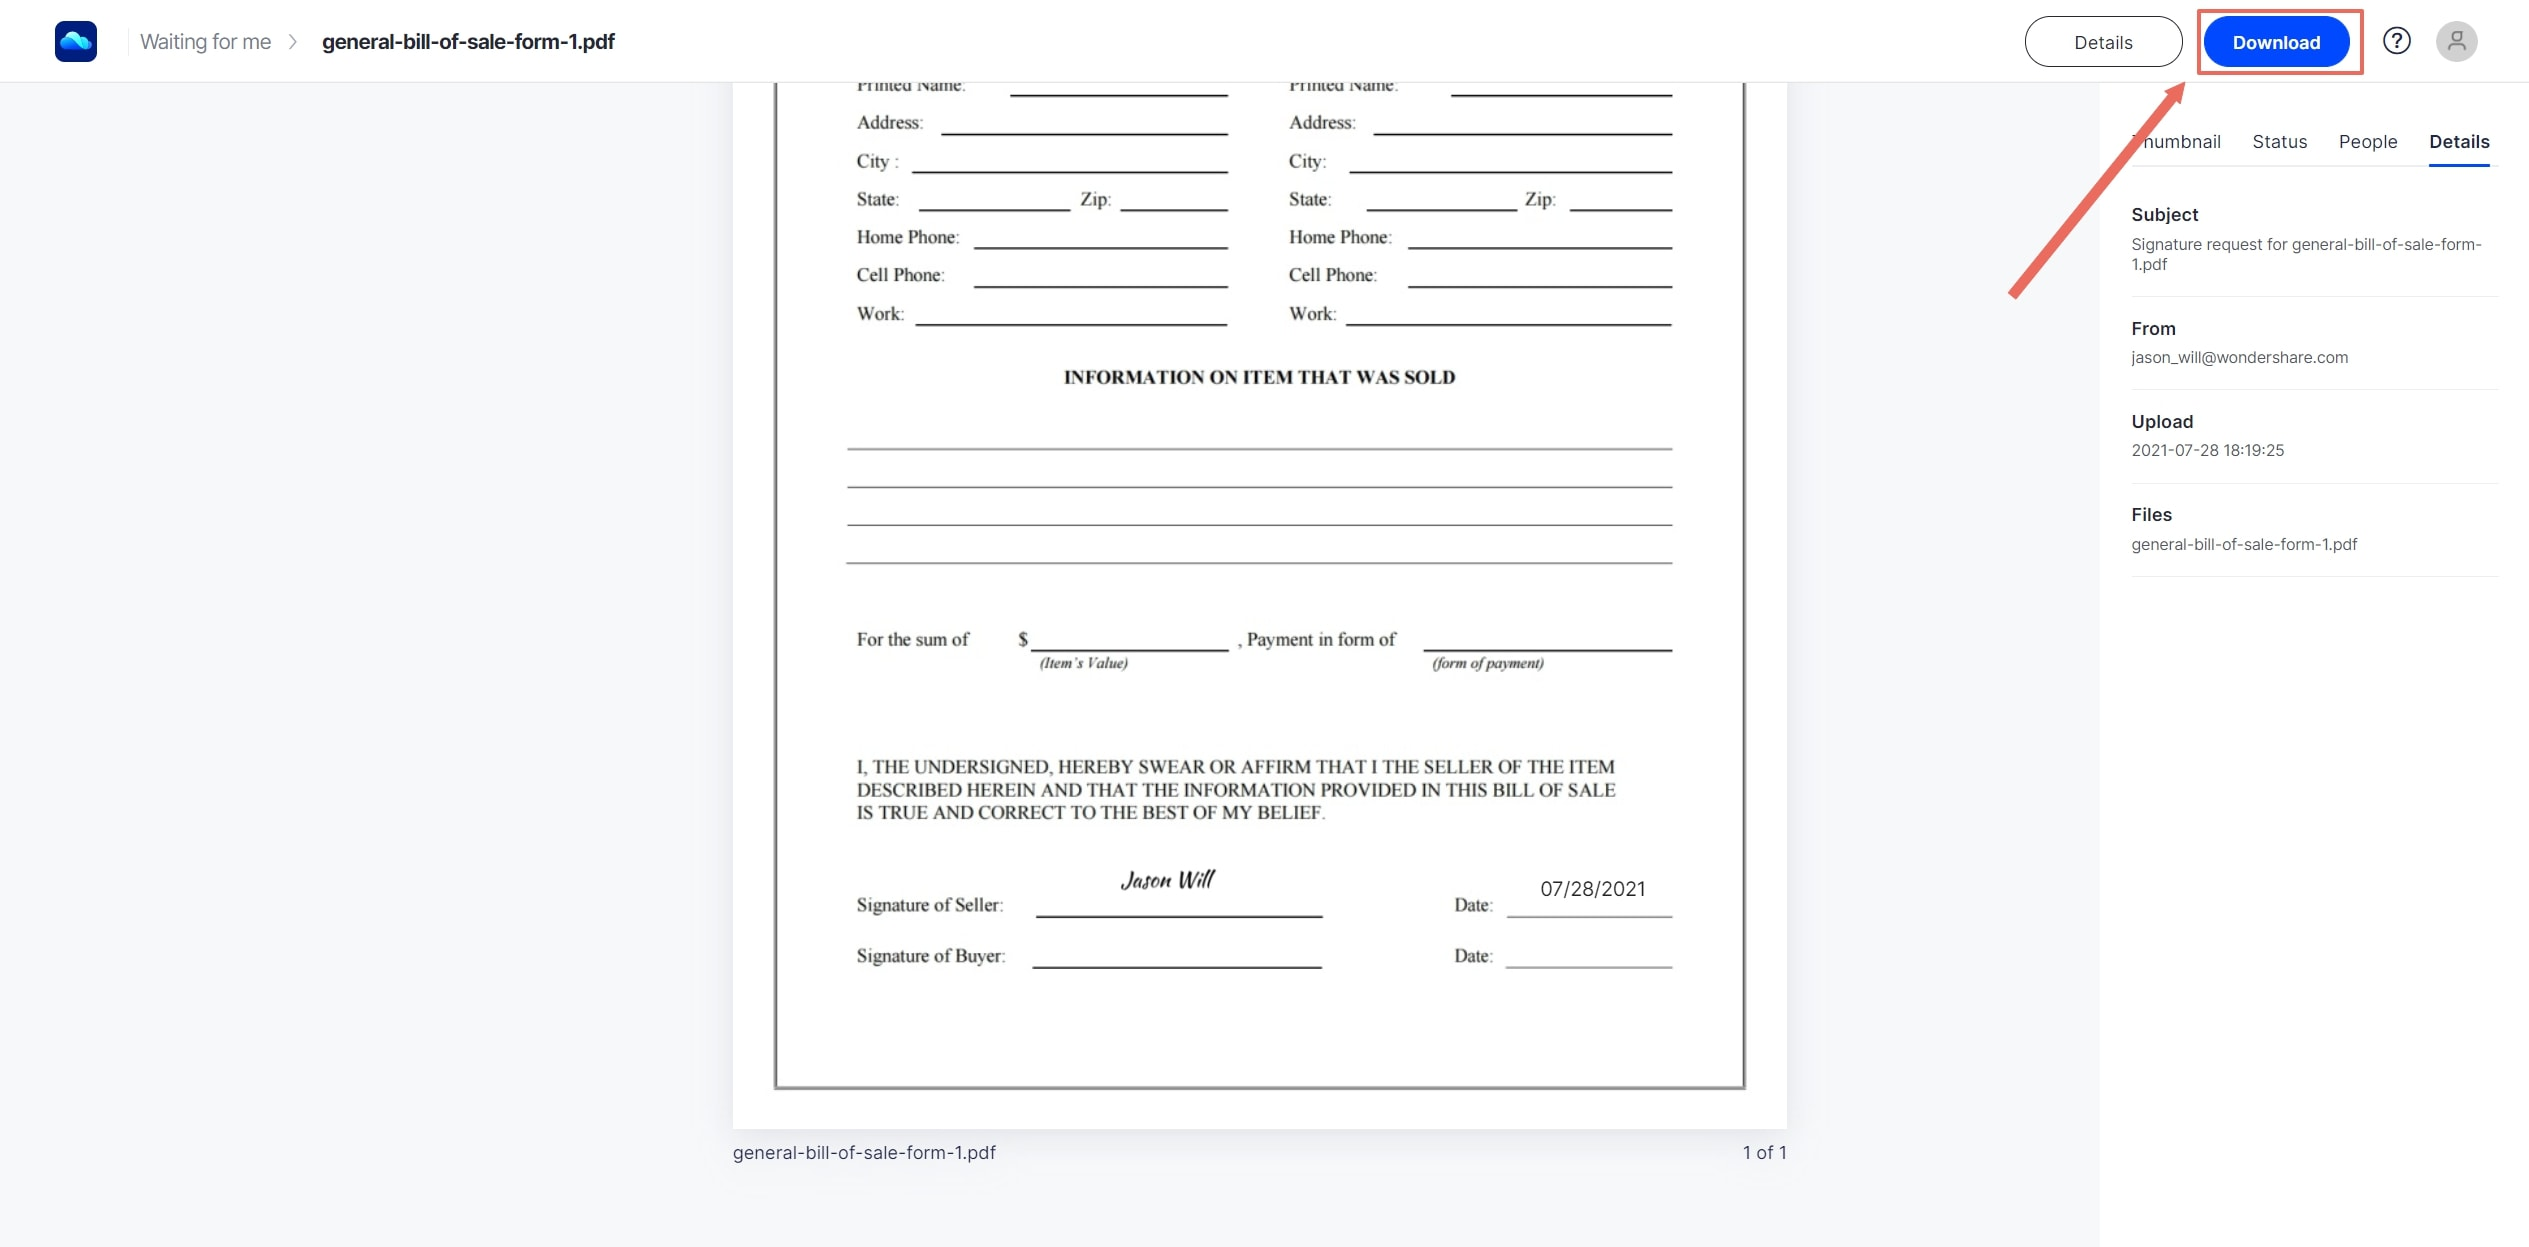 download signed document